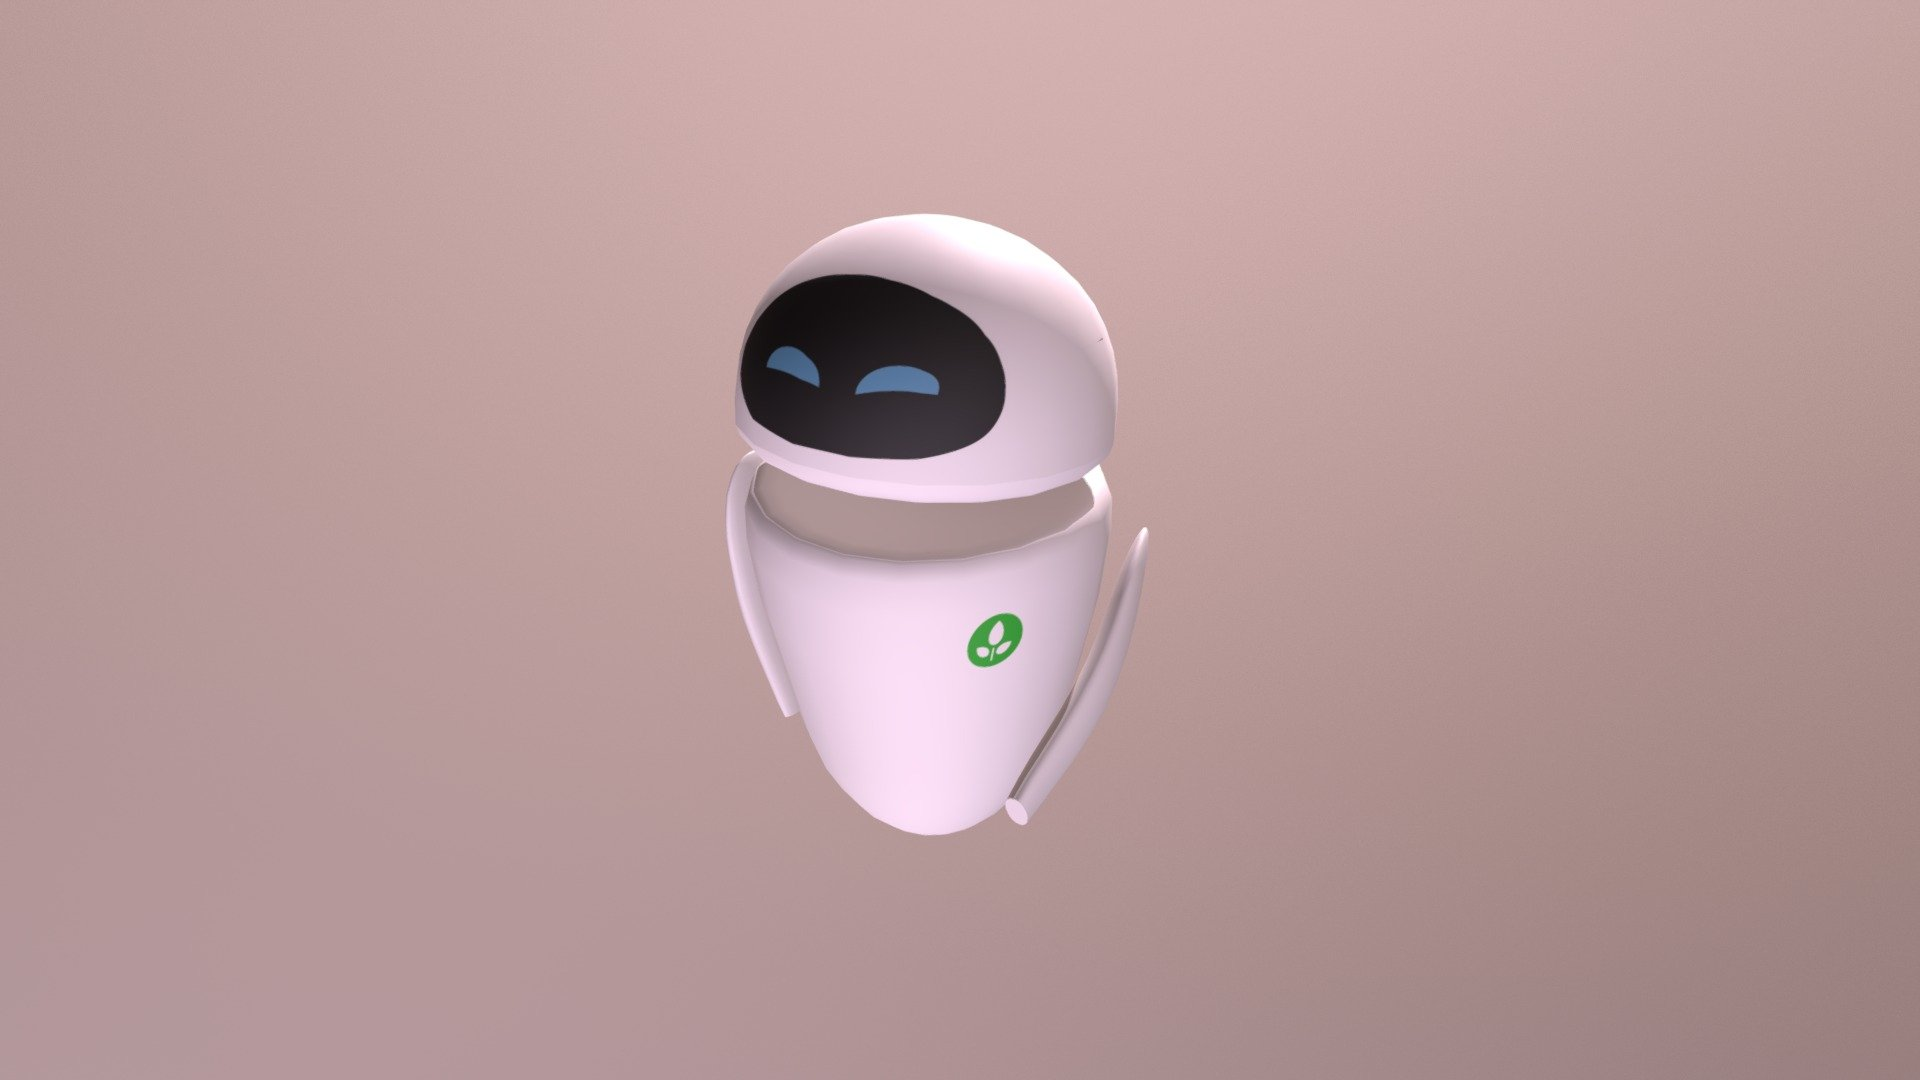 Eva From Wall-E - 3D model by Henrique_Meneses